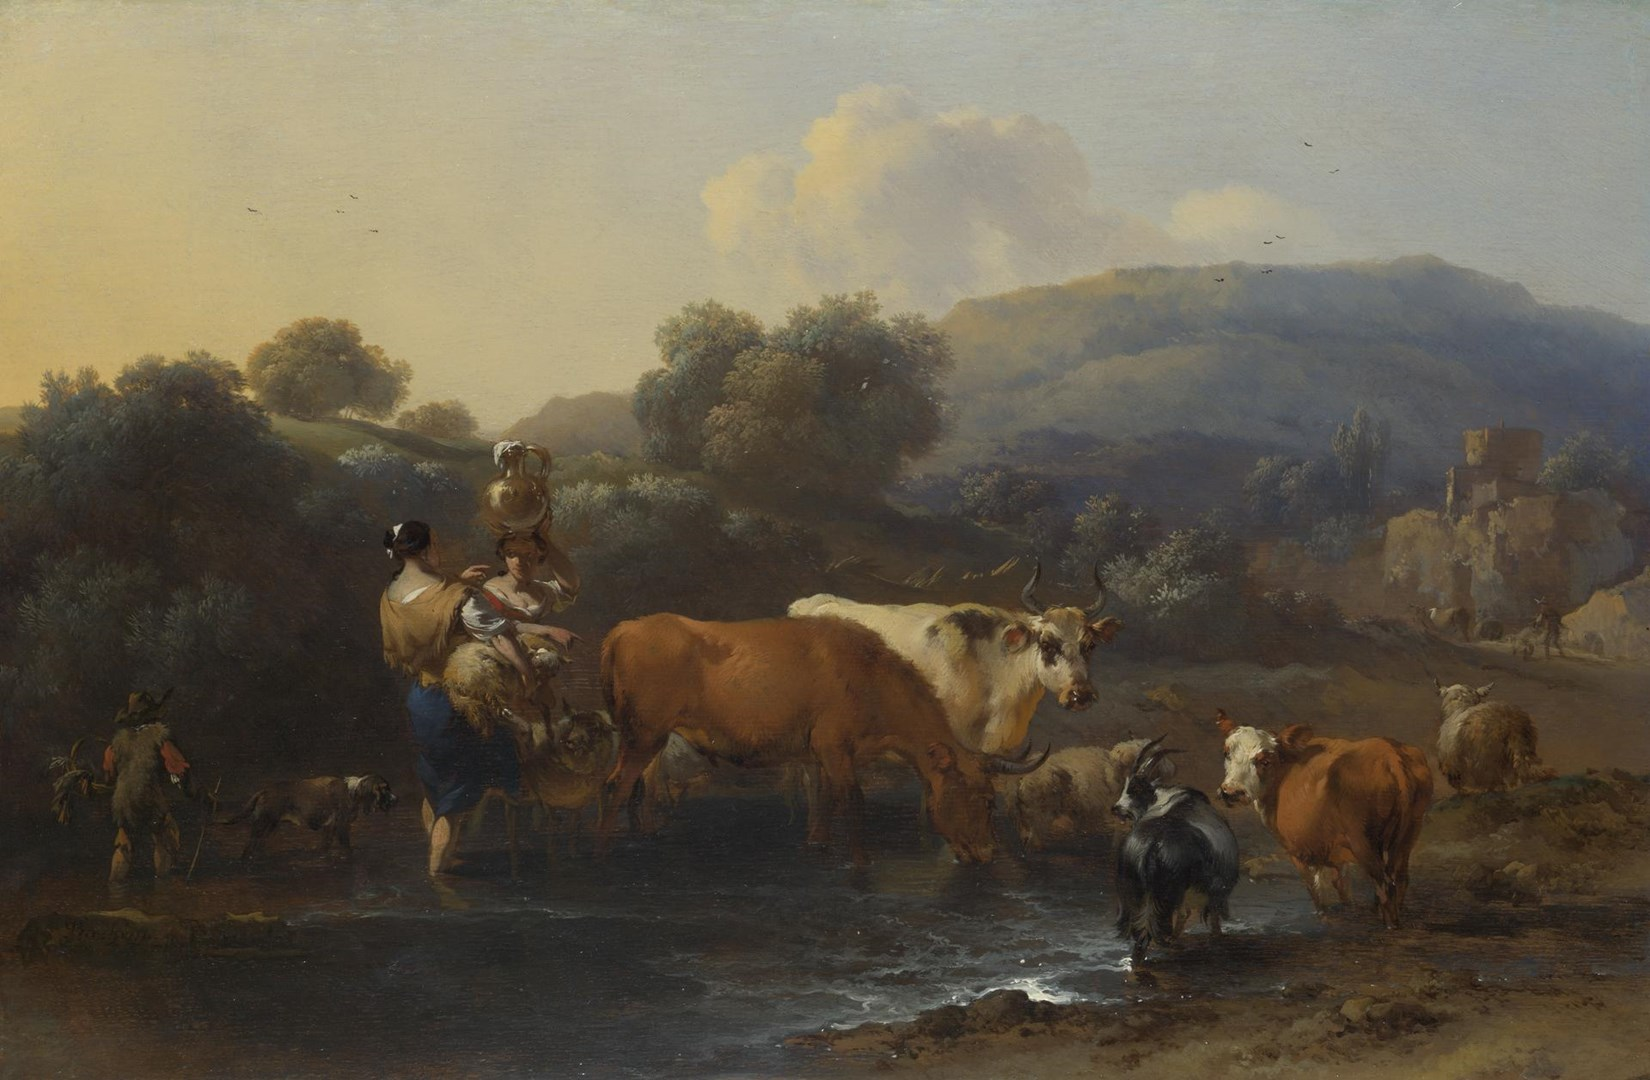 Peasants with Cattle fording a Stream by Nicolaes Berchem